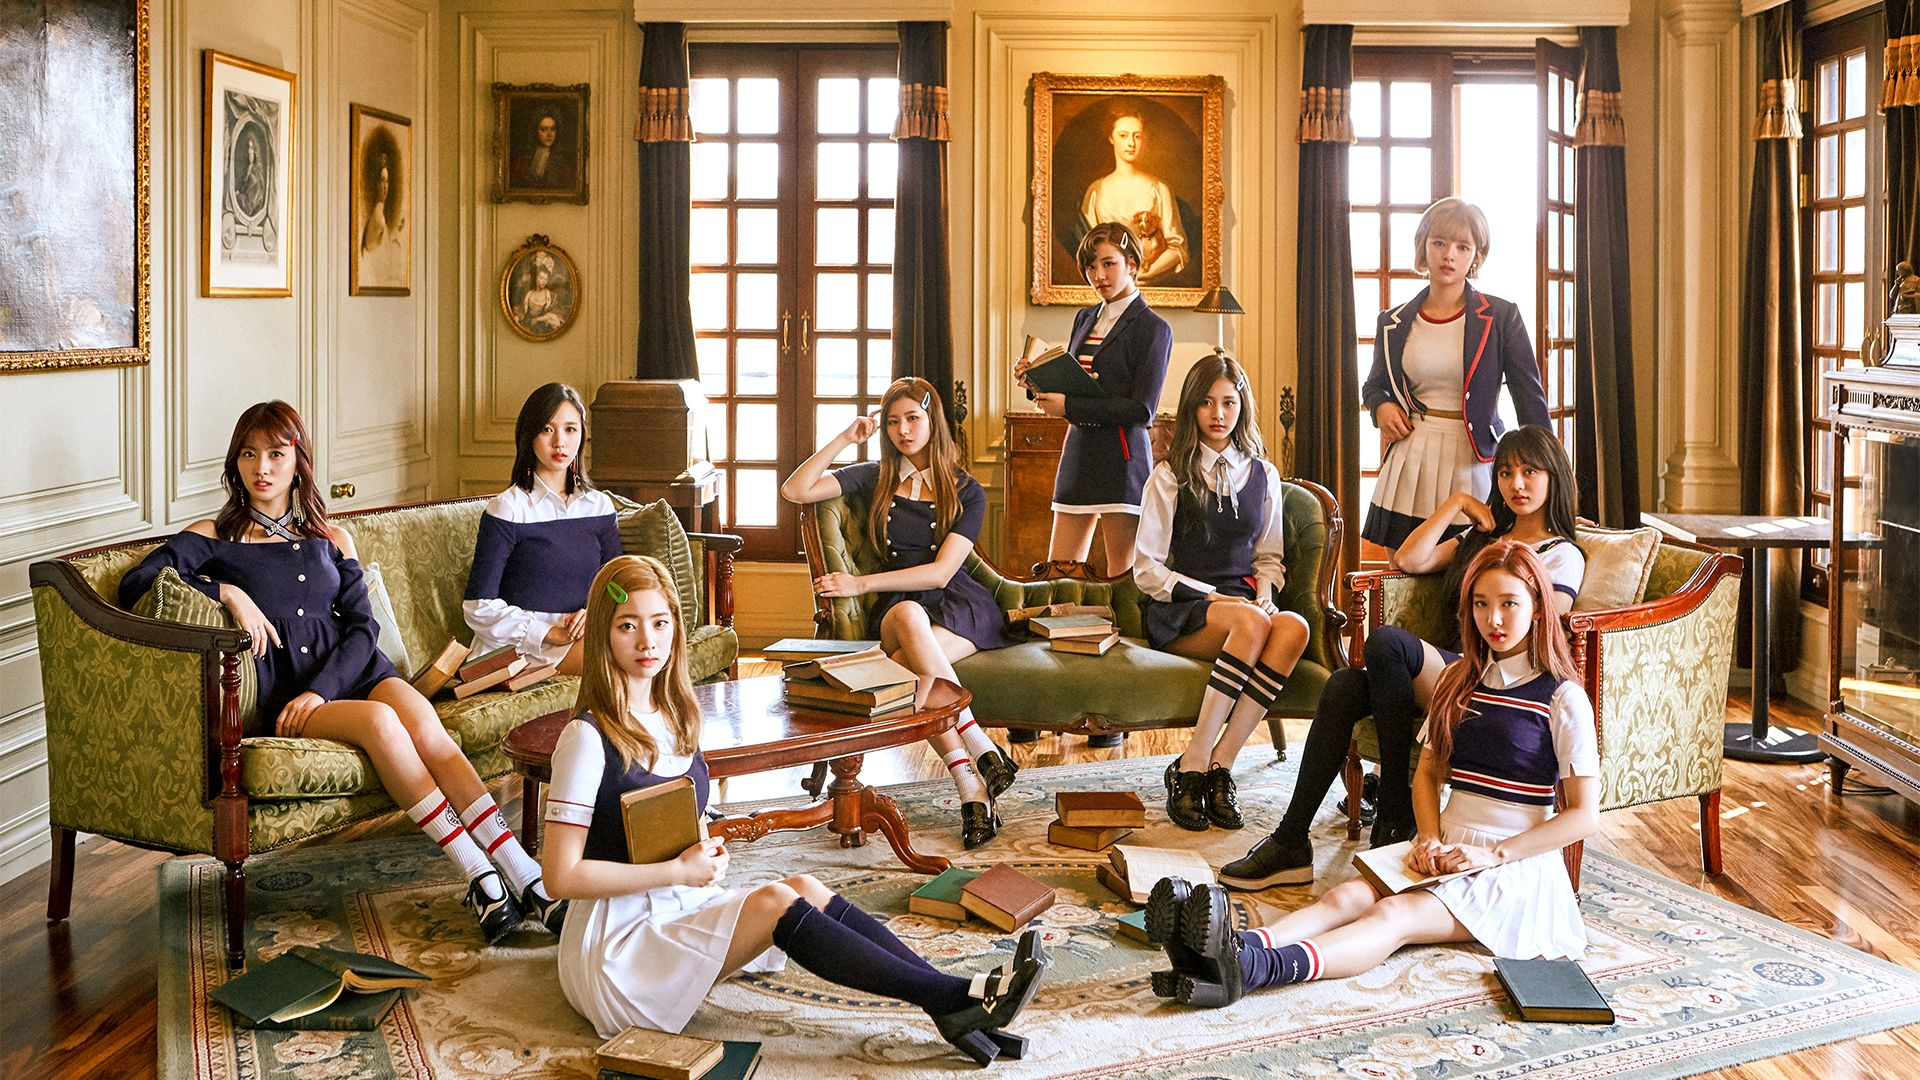 Twice Desktop Wallpaper 2019 1920x1080 Wallpaper Teahub Io